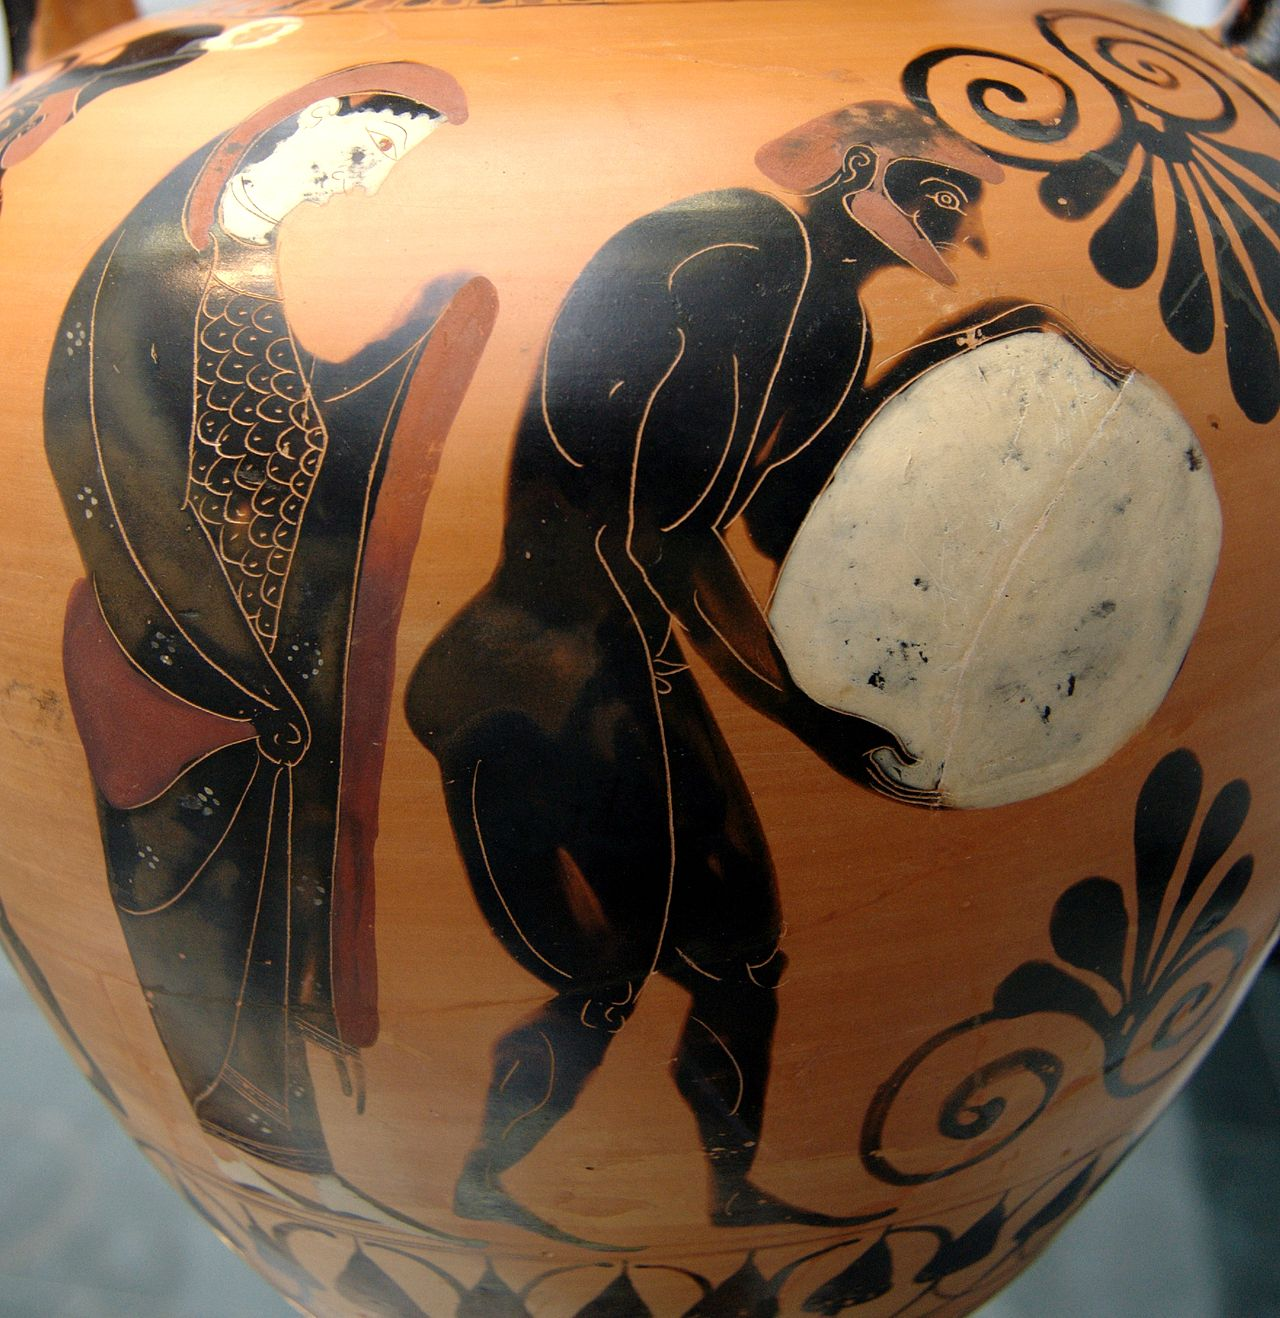 Sisyphus depicted on a black-figure amphora vase, with Persephone looking on